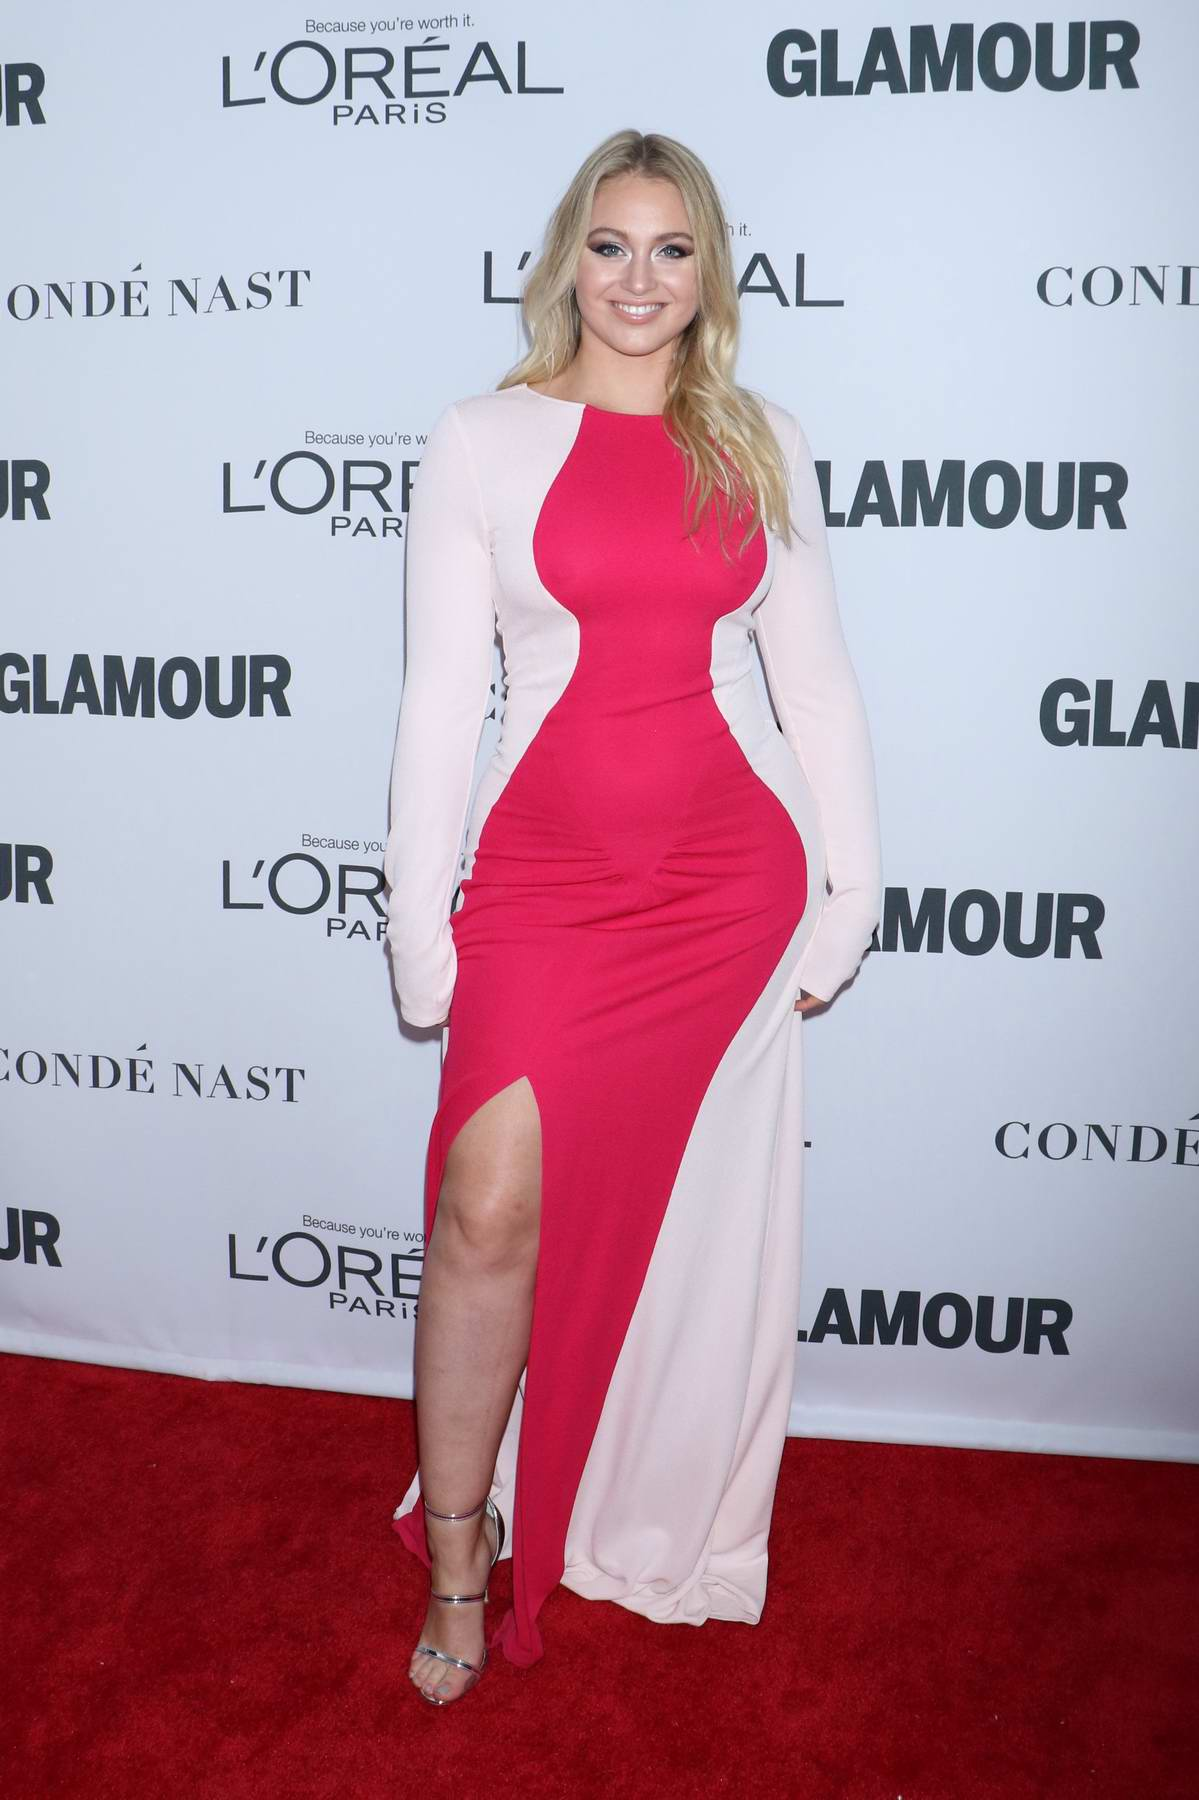 Iskra Lawrence at the Glamour Women Of The Year Awards in New York